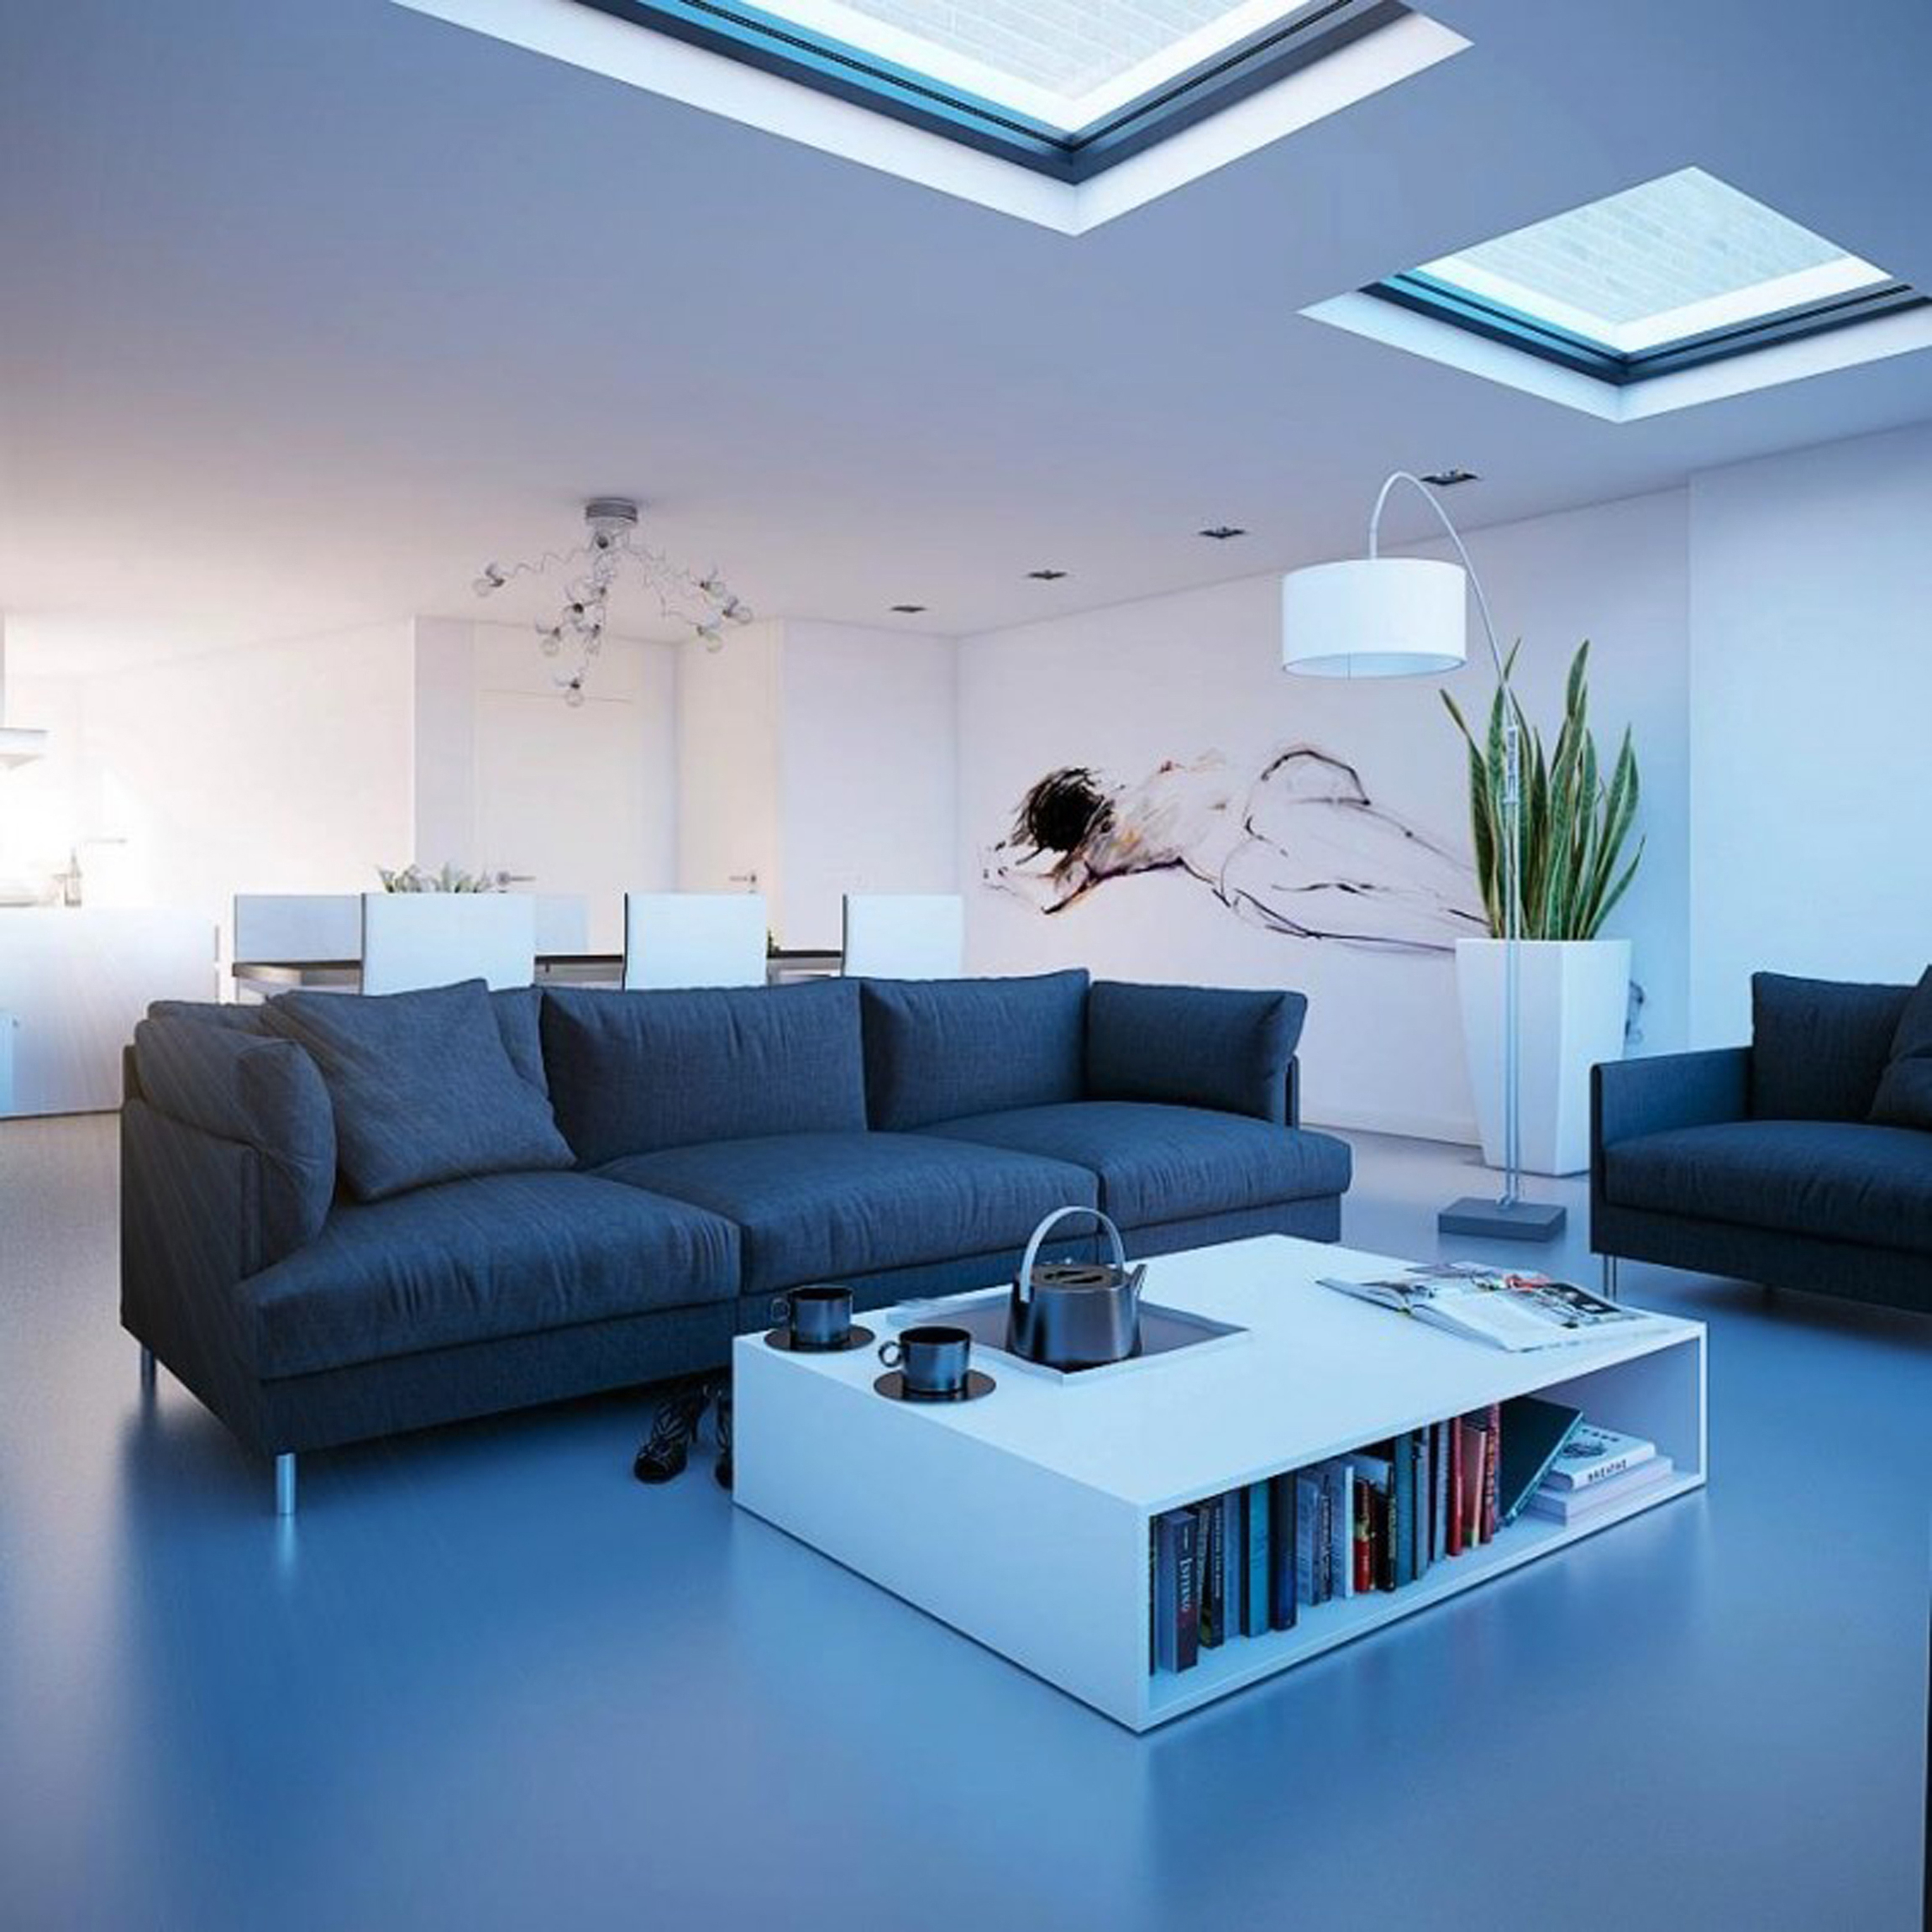 Modern Living Room Decoration With Black Sofas And Awesome White Living Table With Built In Electrical Stove Astonishing Living Rooms Design With Ceiling Window Skylight (Image 11 of 30)